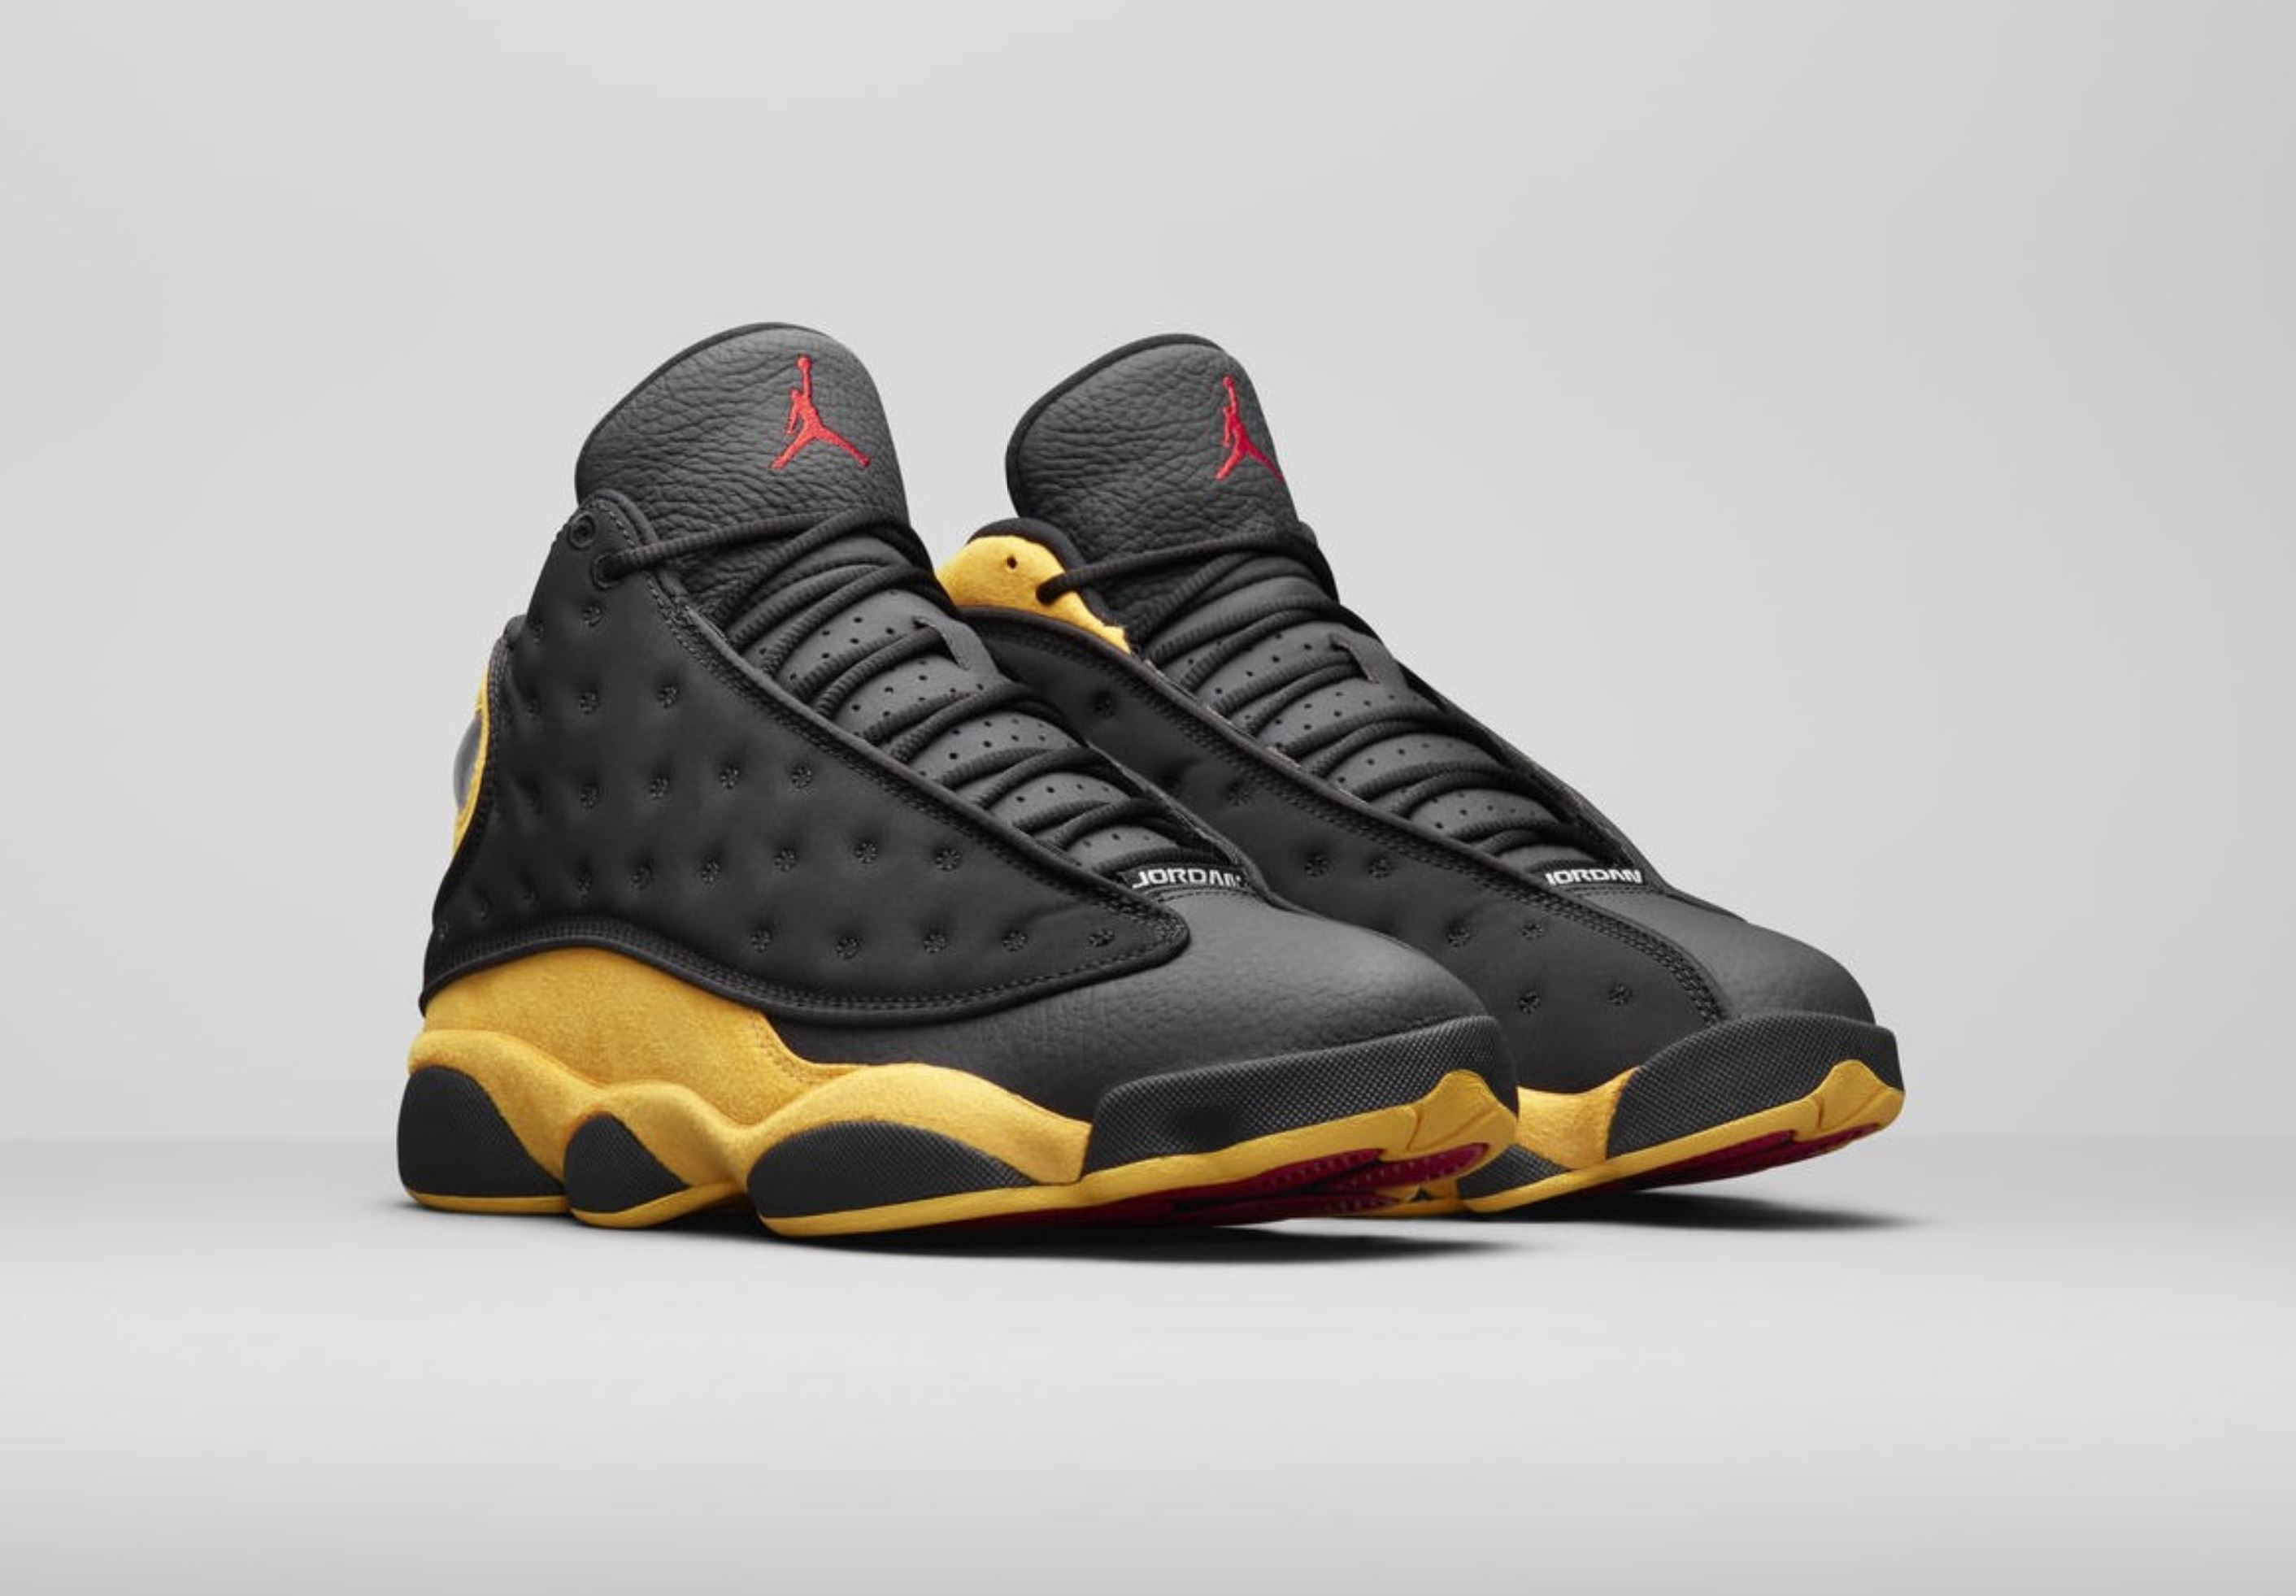 eff9391ad53 Carmelo's Air Jordan 13 'Class of 2002' Will Not Release in Some ...